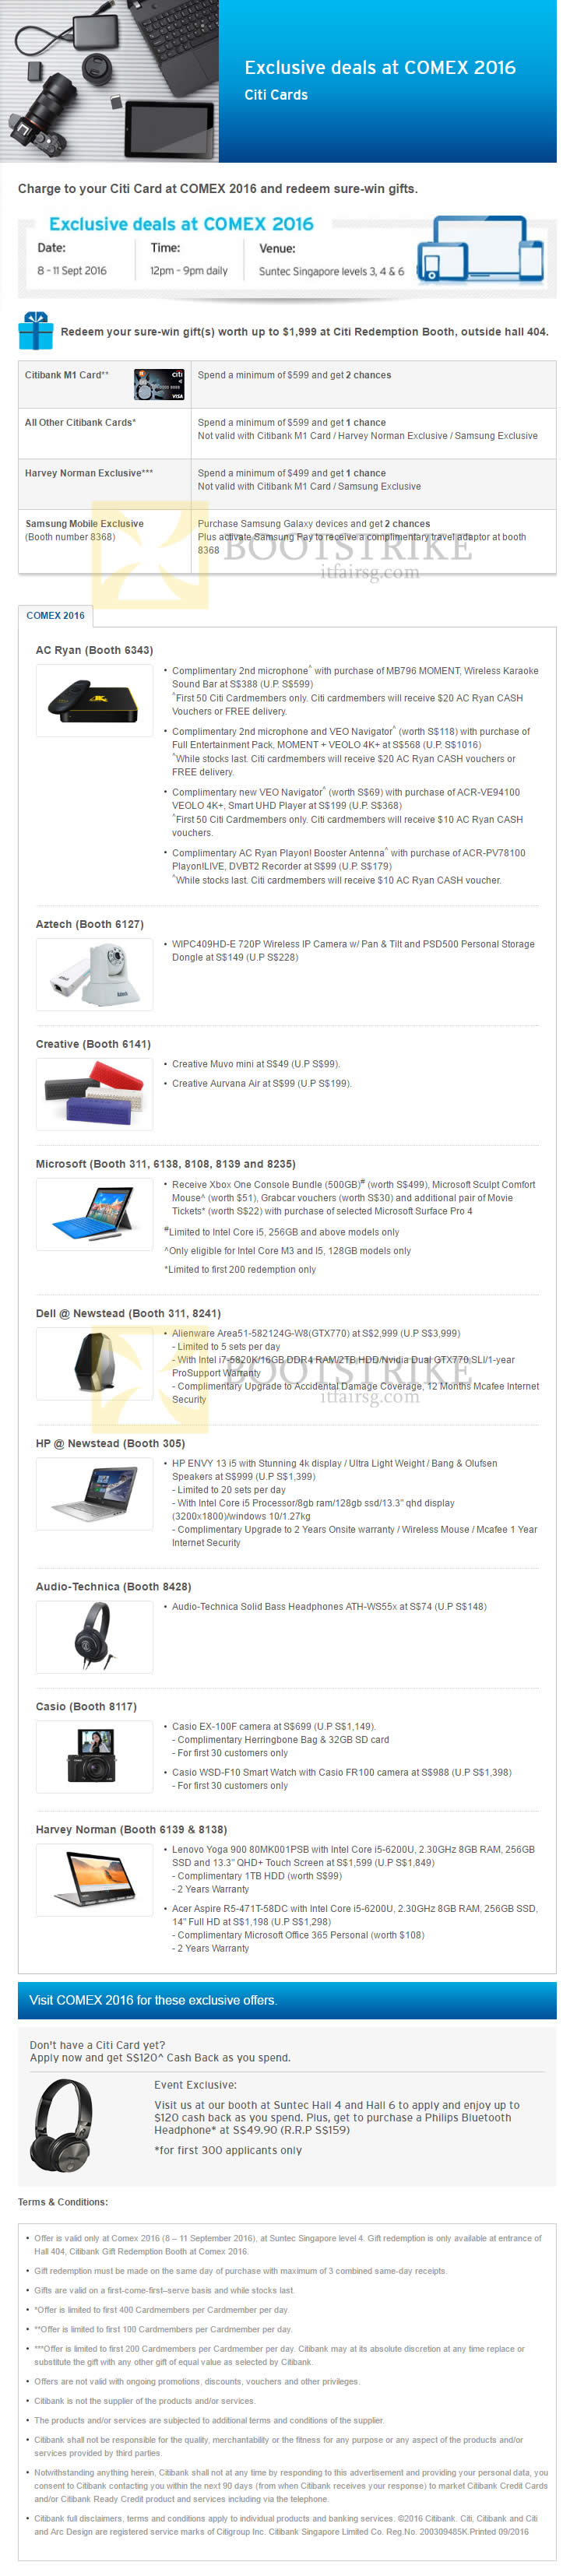 COMEX 2016 price list image brochure of Citibank Exclusive Deals, Spend N Redeem Sure-Win Gift, AC Ryan, Creative, Aztech, Microsoft, Dell, HP, Casio